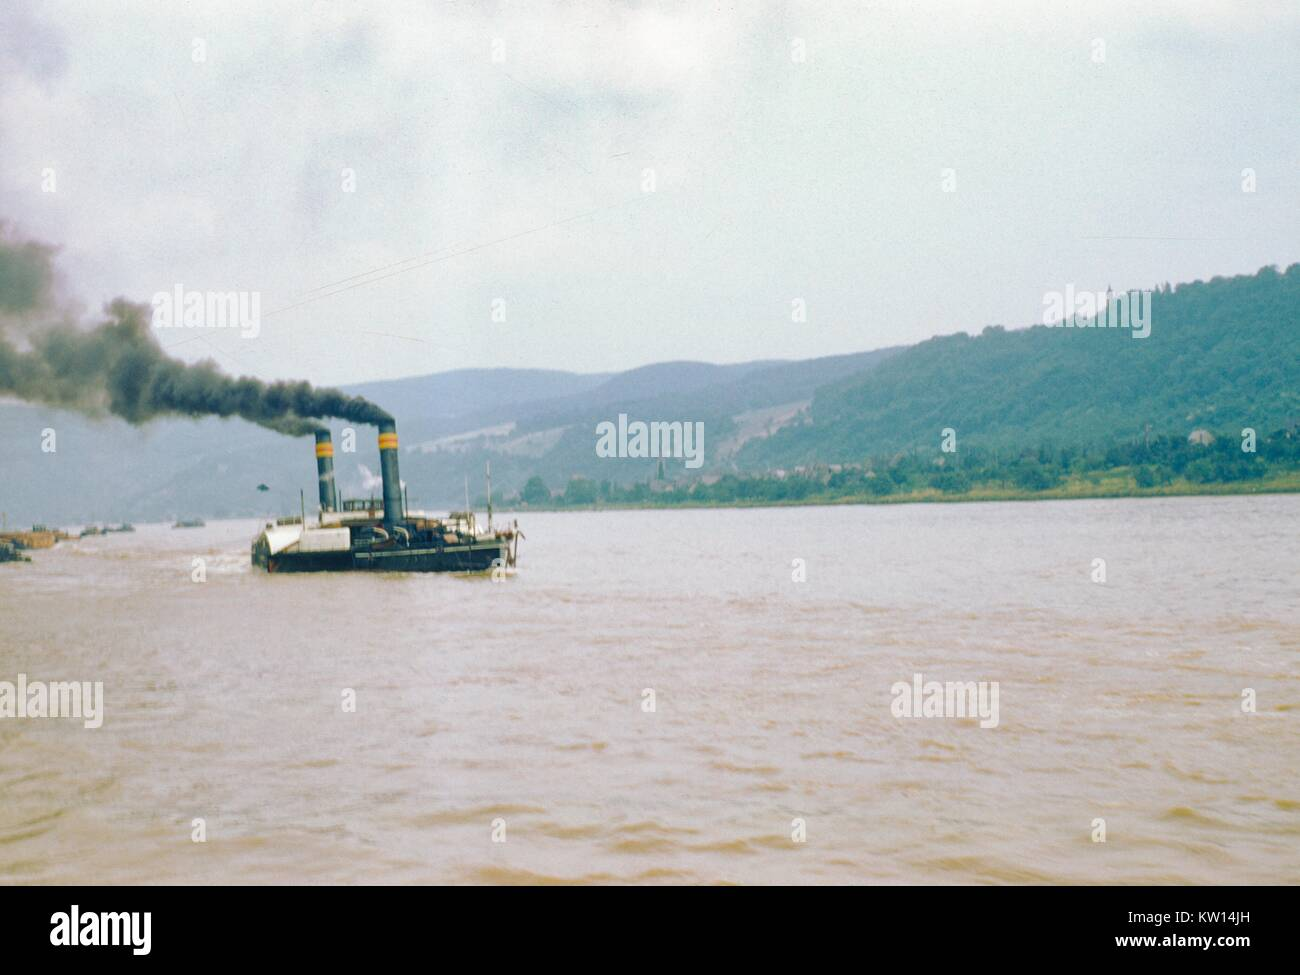 Steamship on the Rhine river, Germany, 1952. - Stock Image